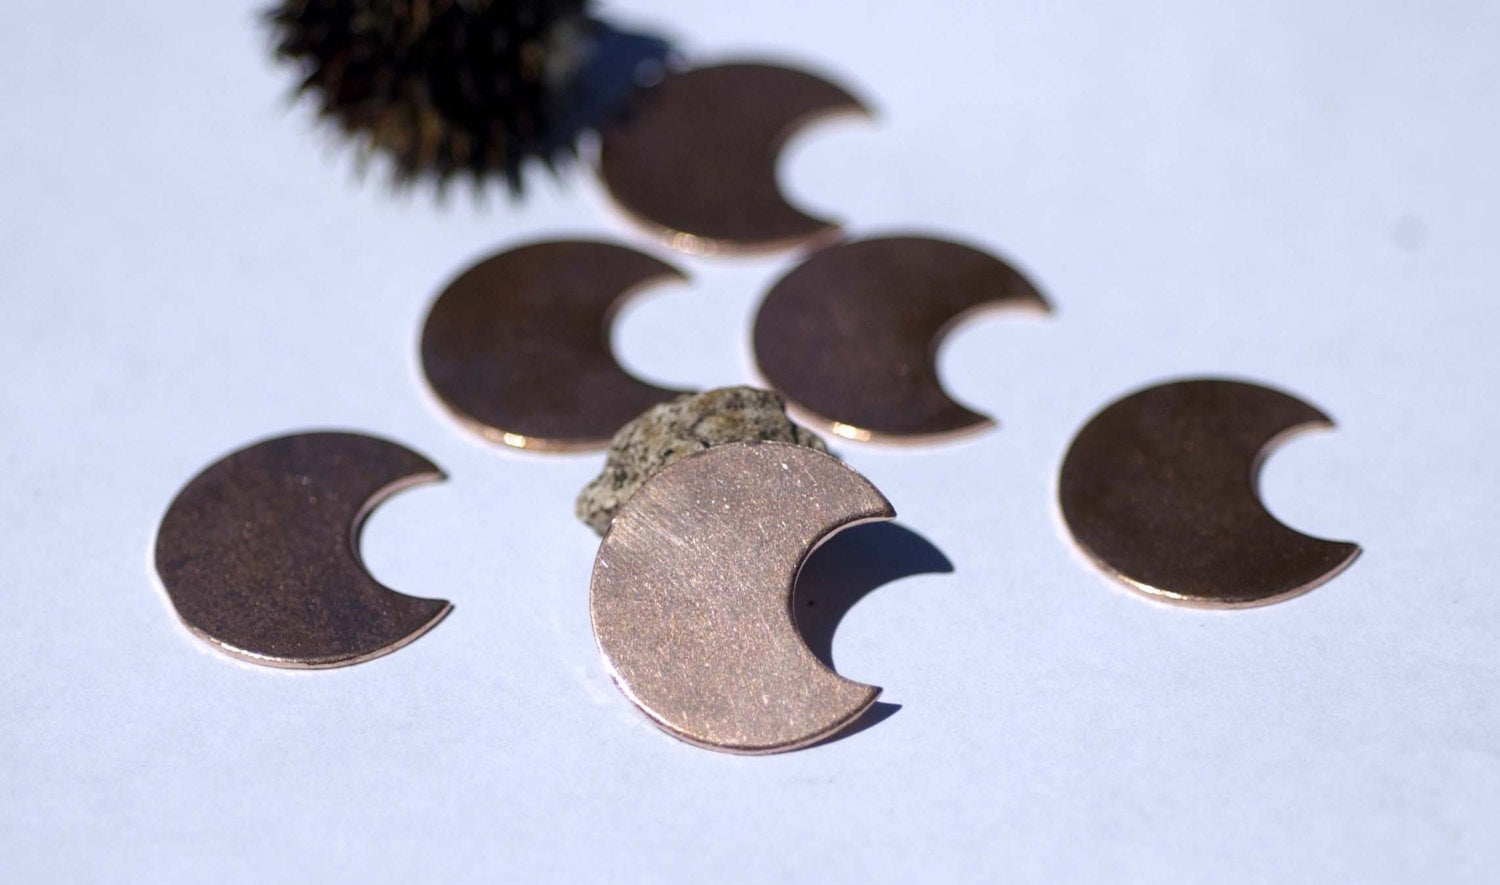 Crescent Moon shaped metal blanks 22mm x 24mm copper, brass, bronze, nickel silver